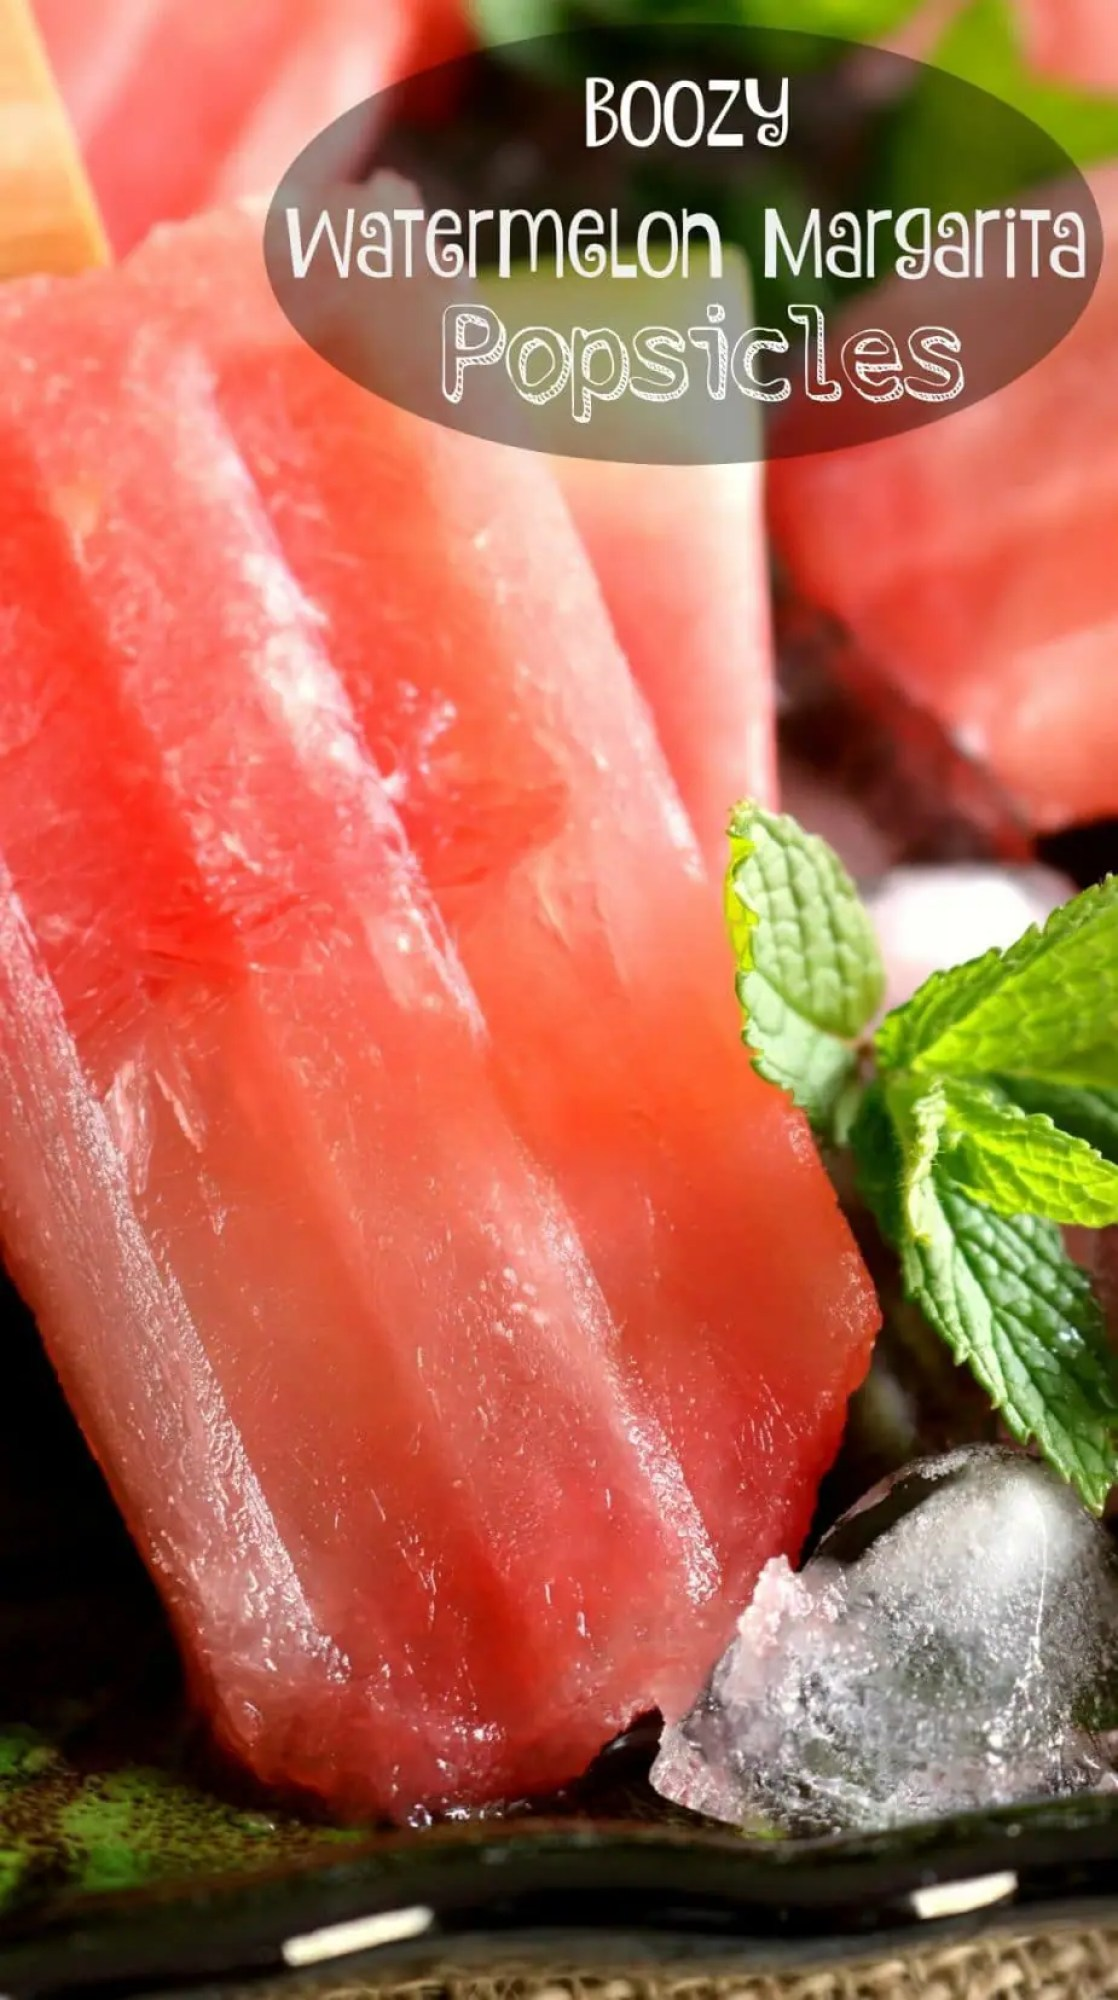 These Boozy Watermelon Margarita Popsicles are a hit at backyard ...